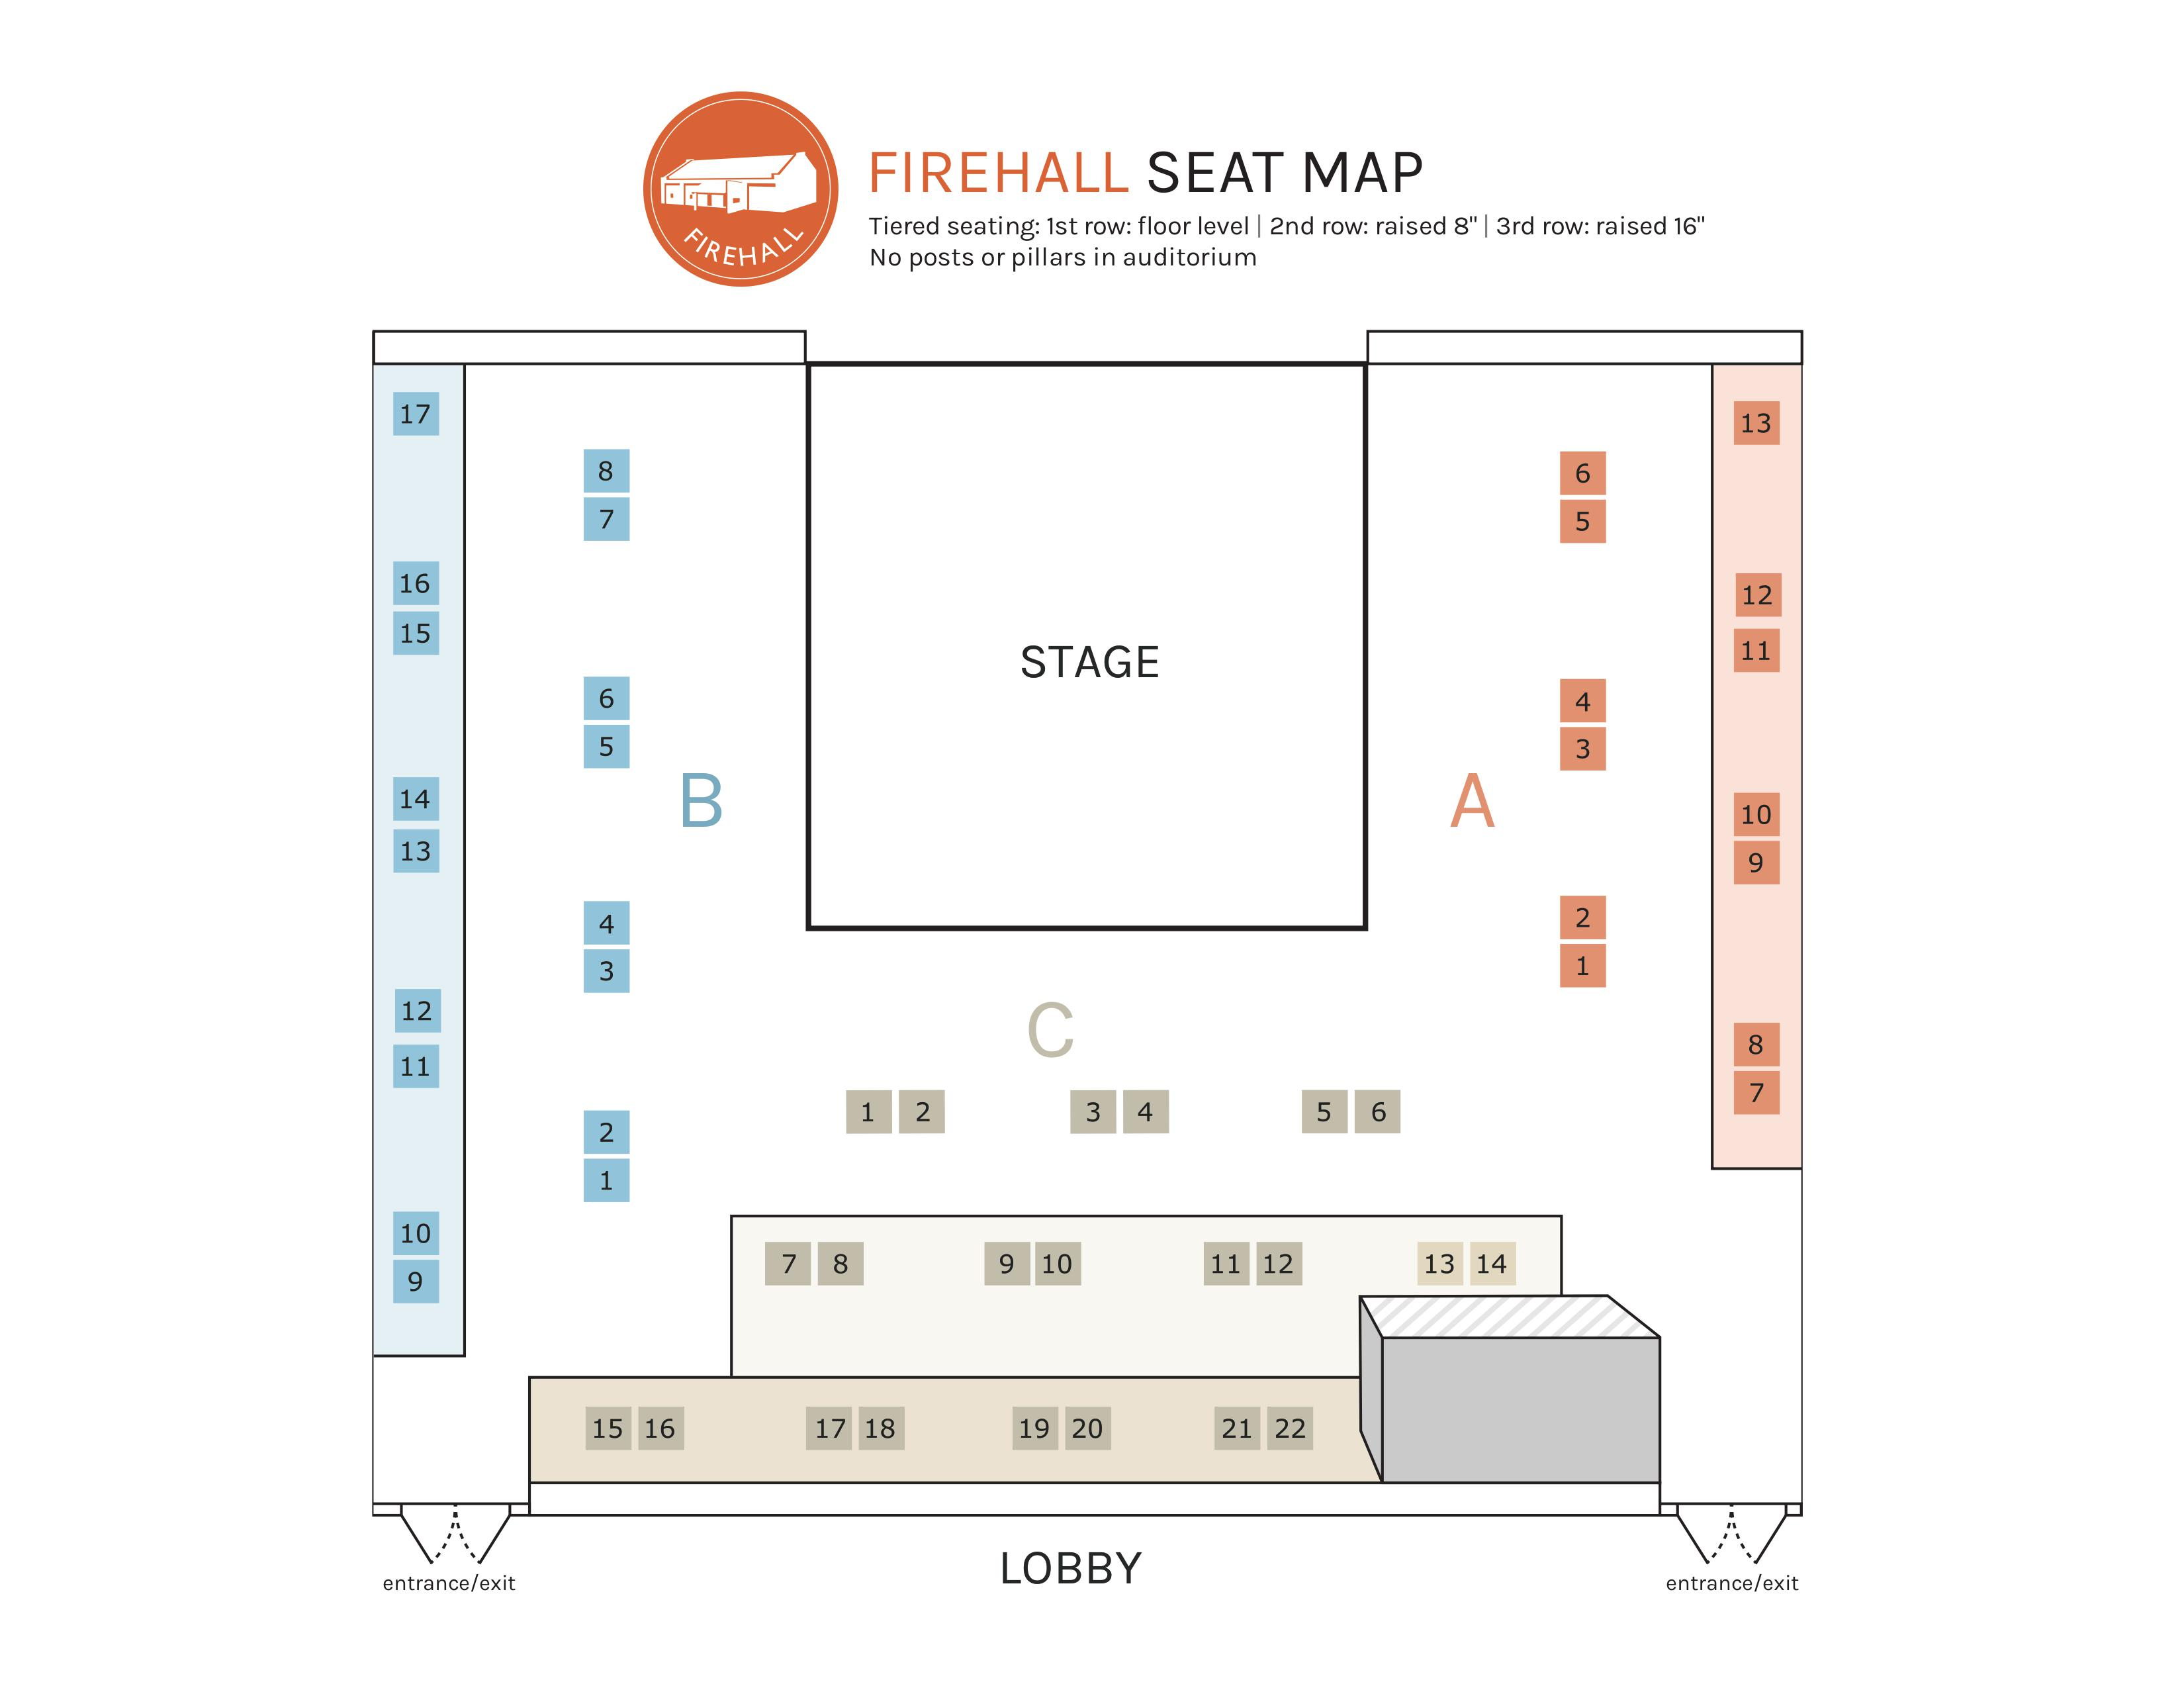 Firehall Seating Chart. Call our box office if you require a description of the seating chart.